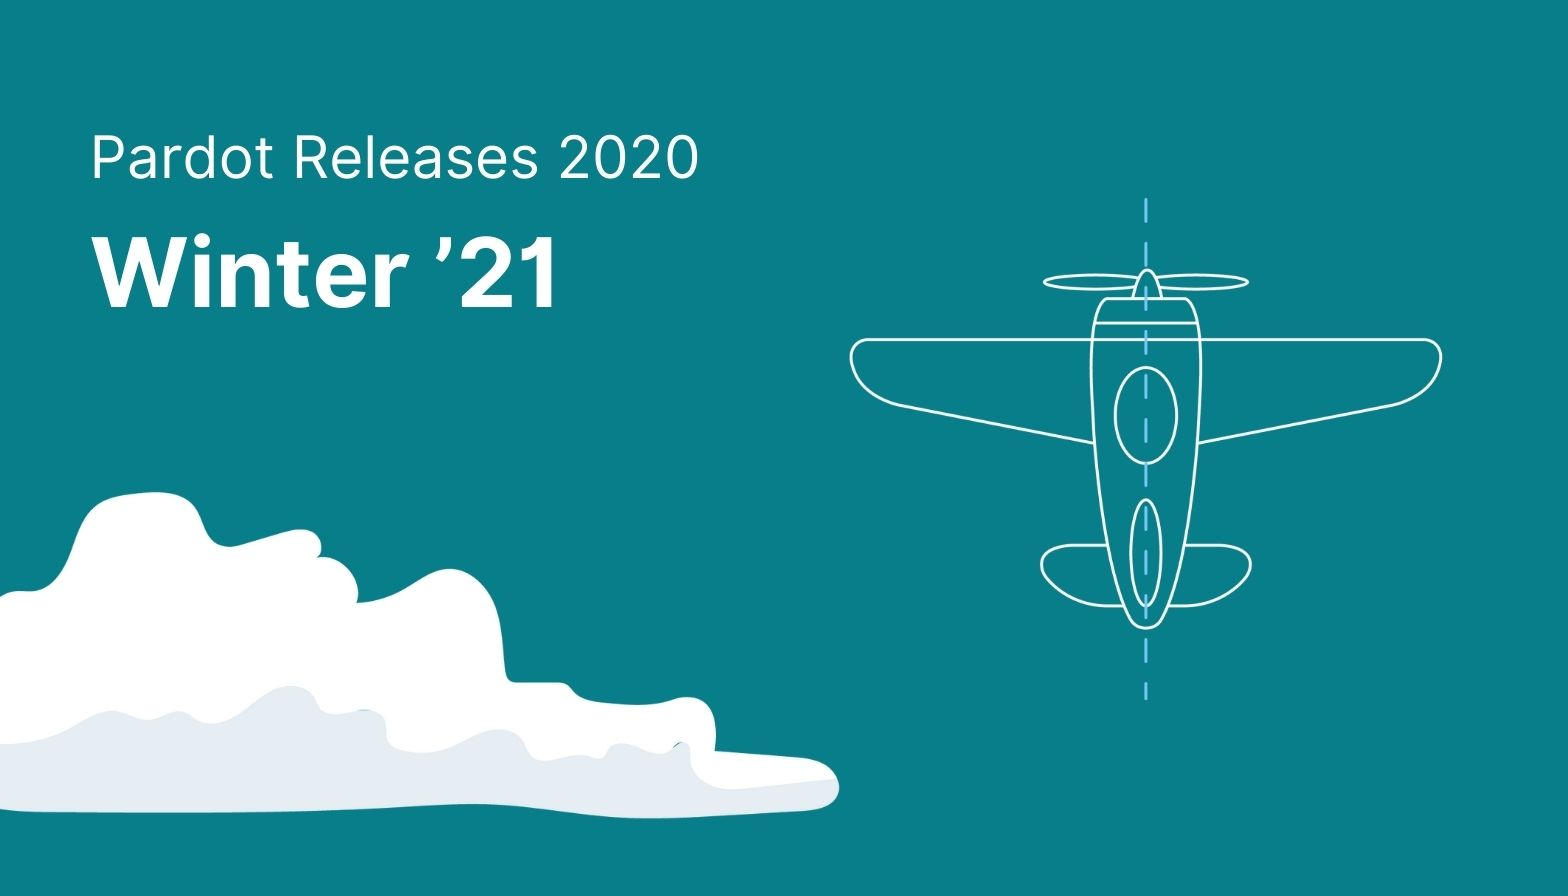 Feature image: Pardot releases 2020 - Winter '21